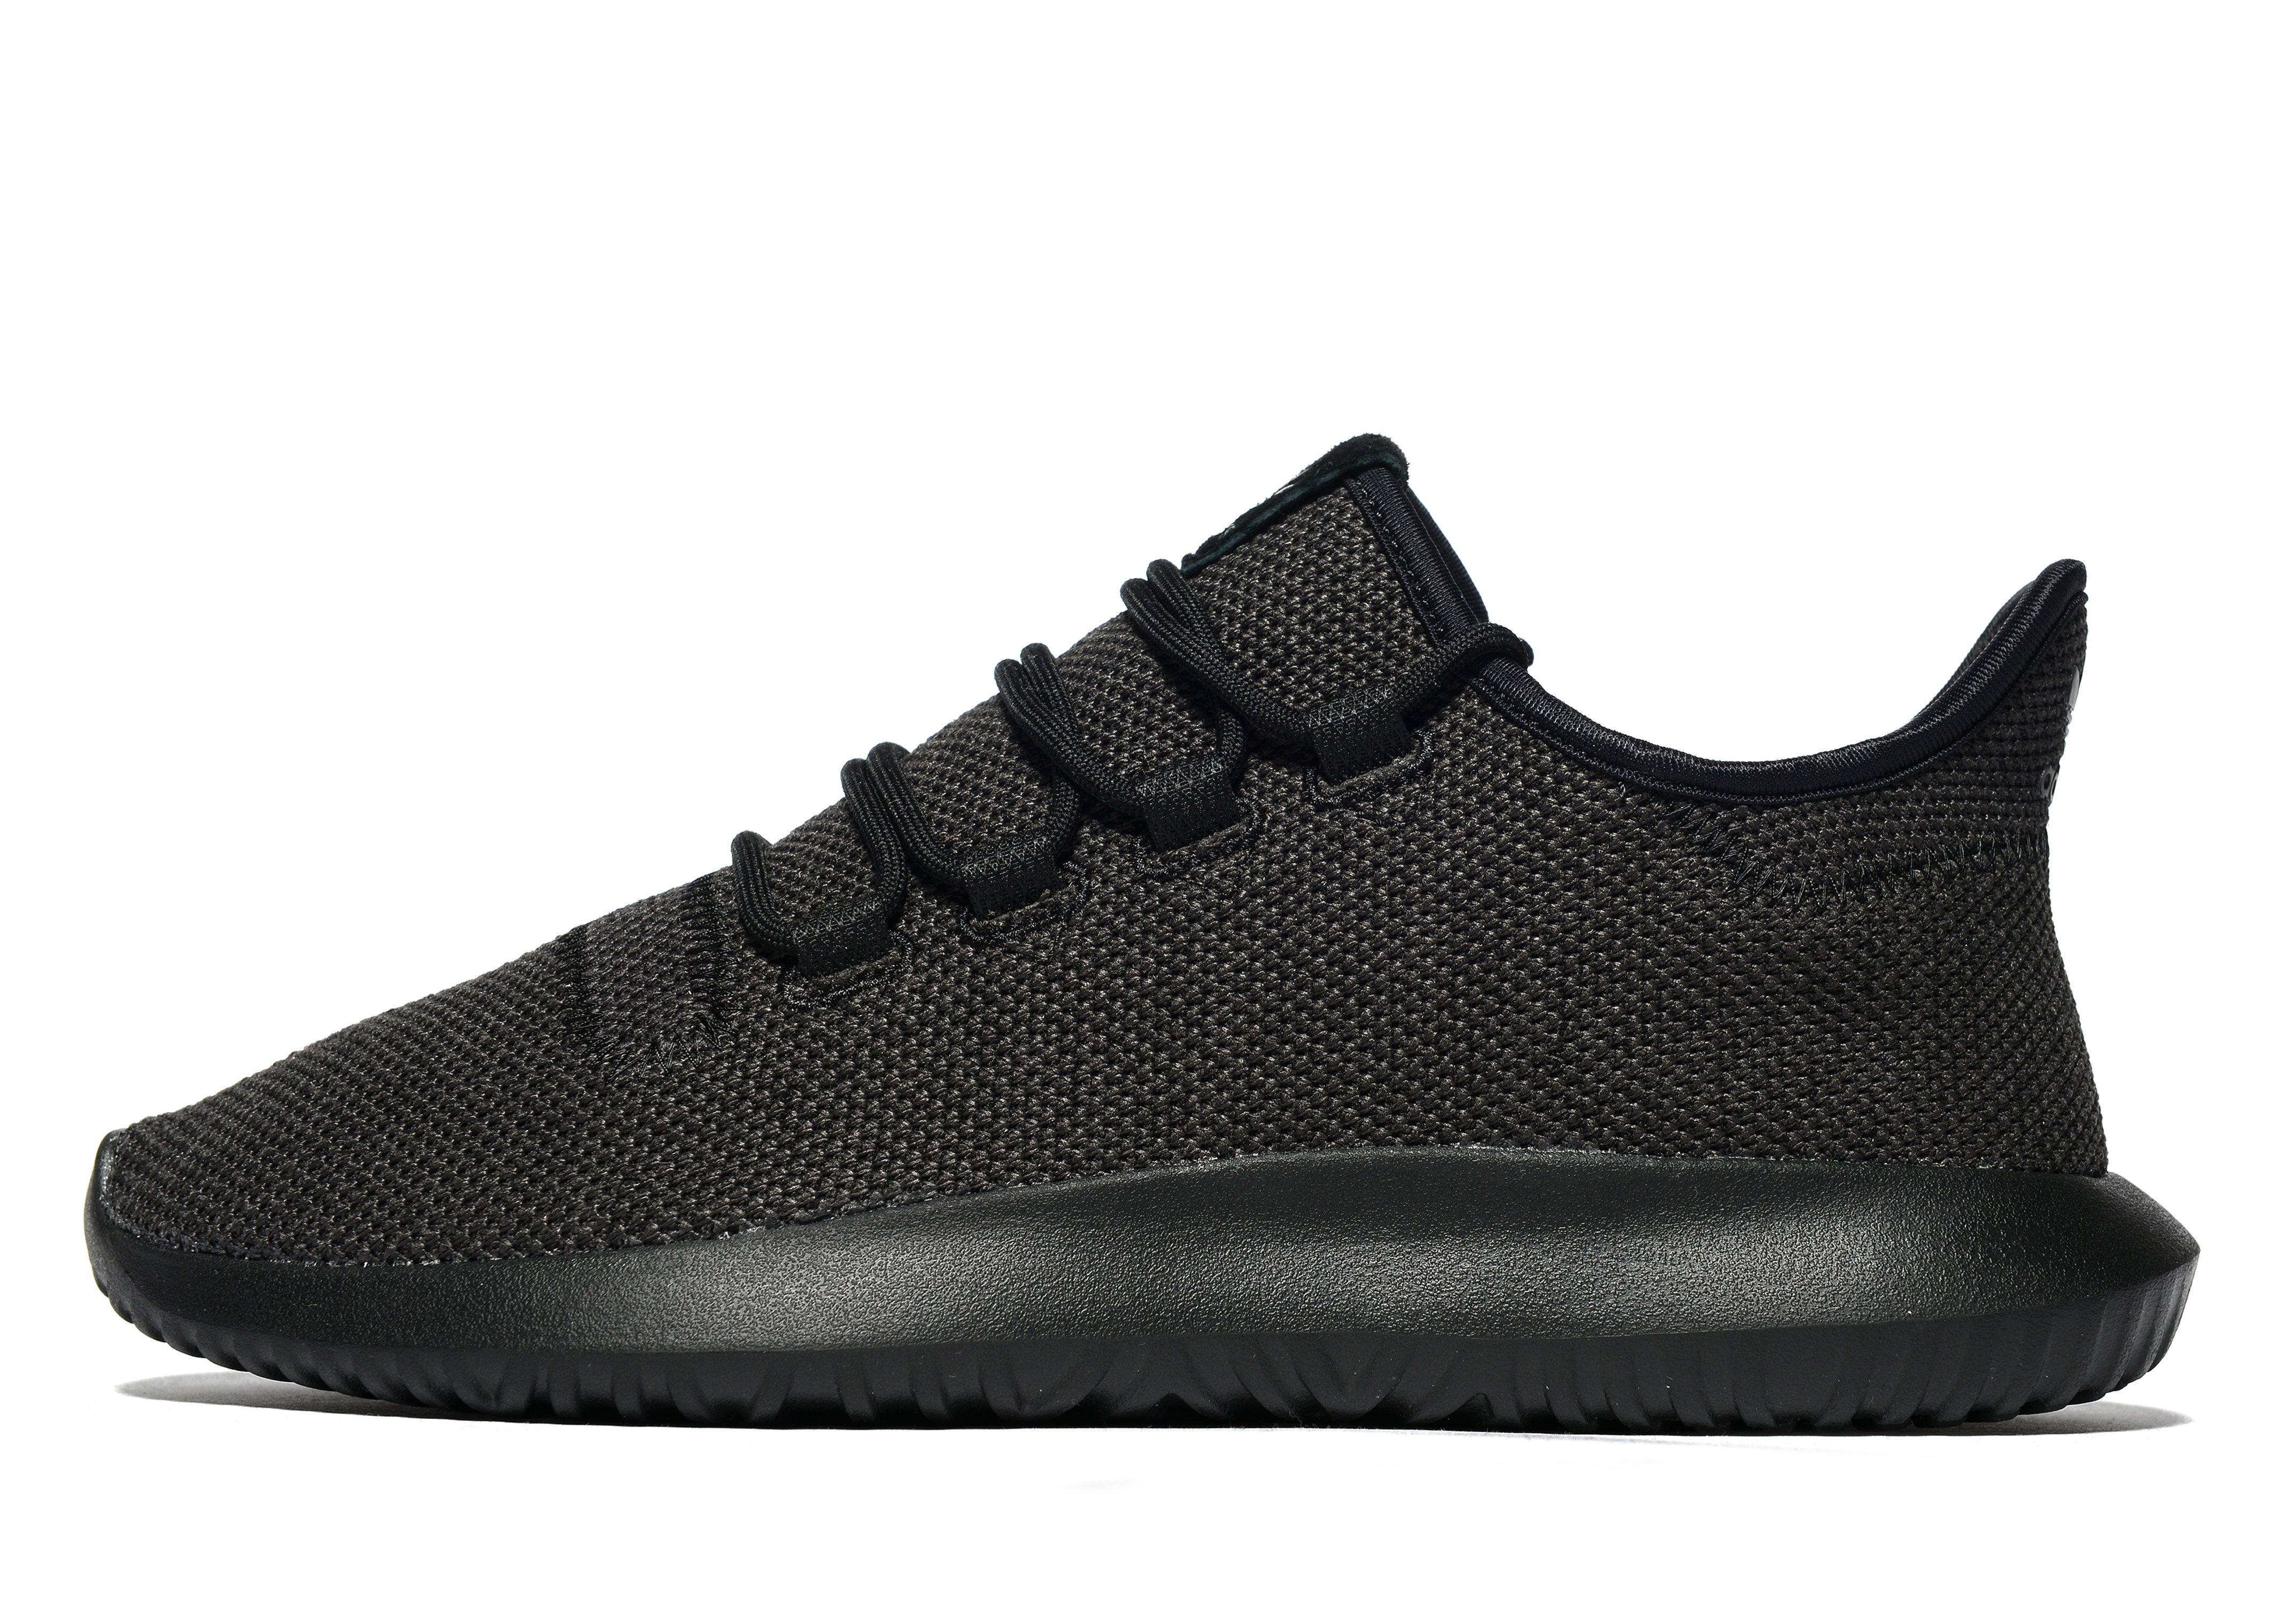 Adidas tubular original seguro Financial Services Ltd